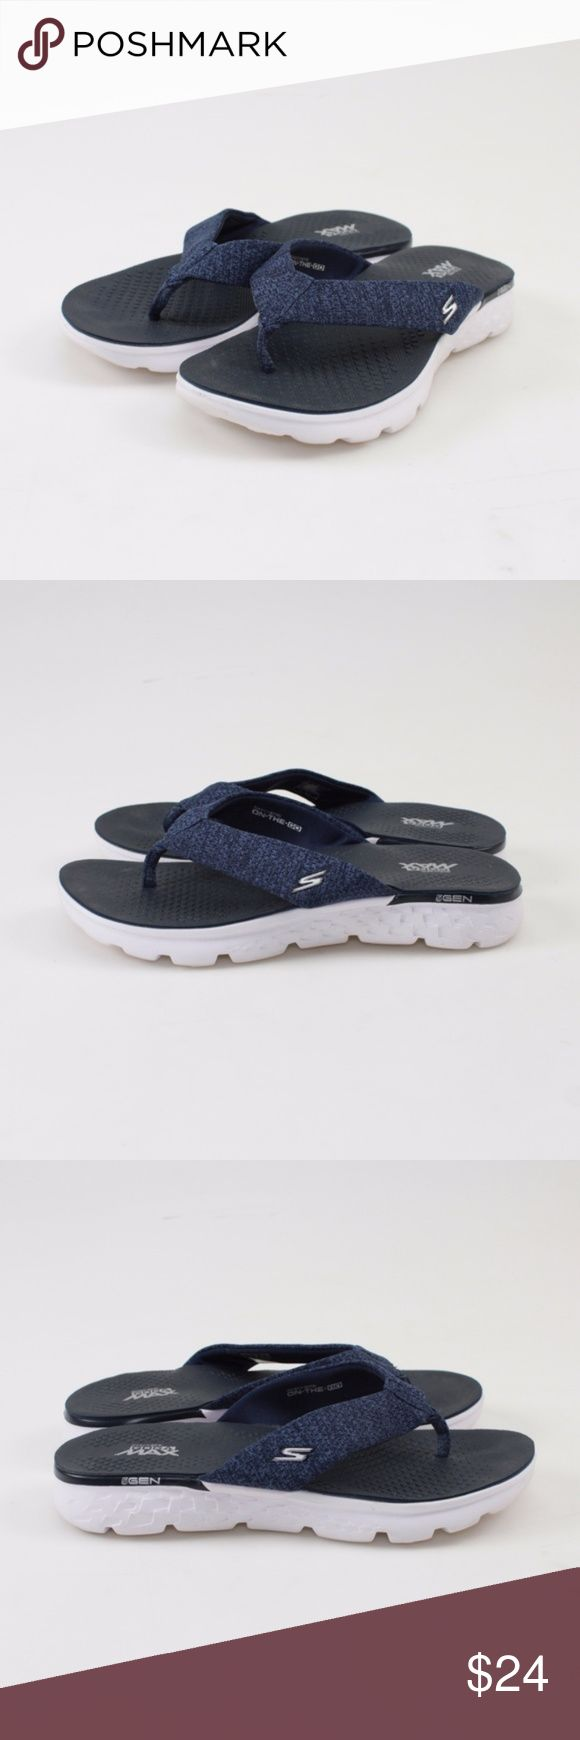 Skechers Navy On the GO 400 Vivacity Sandal // 8 Advanced technology combines with comfort and style! Shock-absorption and support GOimpulse sensors for responsive traction and ground feel Fabric upper & lining  These shoes were a store return, but are still in great condition. Only wear on the sole from being tried out. Photos show all details, so please look over thoroughly.  These still come in their original box! #15WK24 // Skechers // Sandals // Flip Flops // Navy White Skechers Shoes…